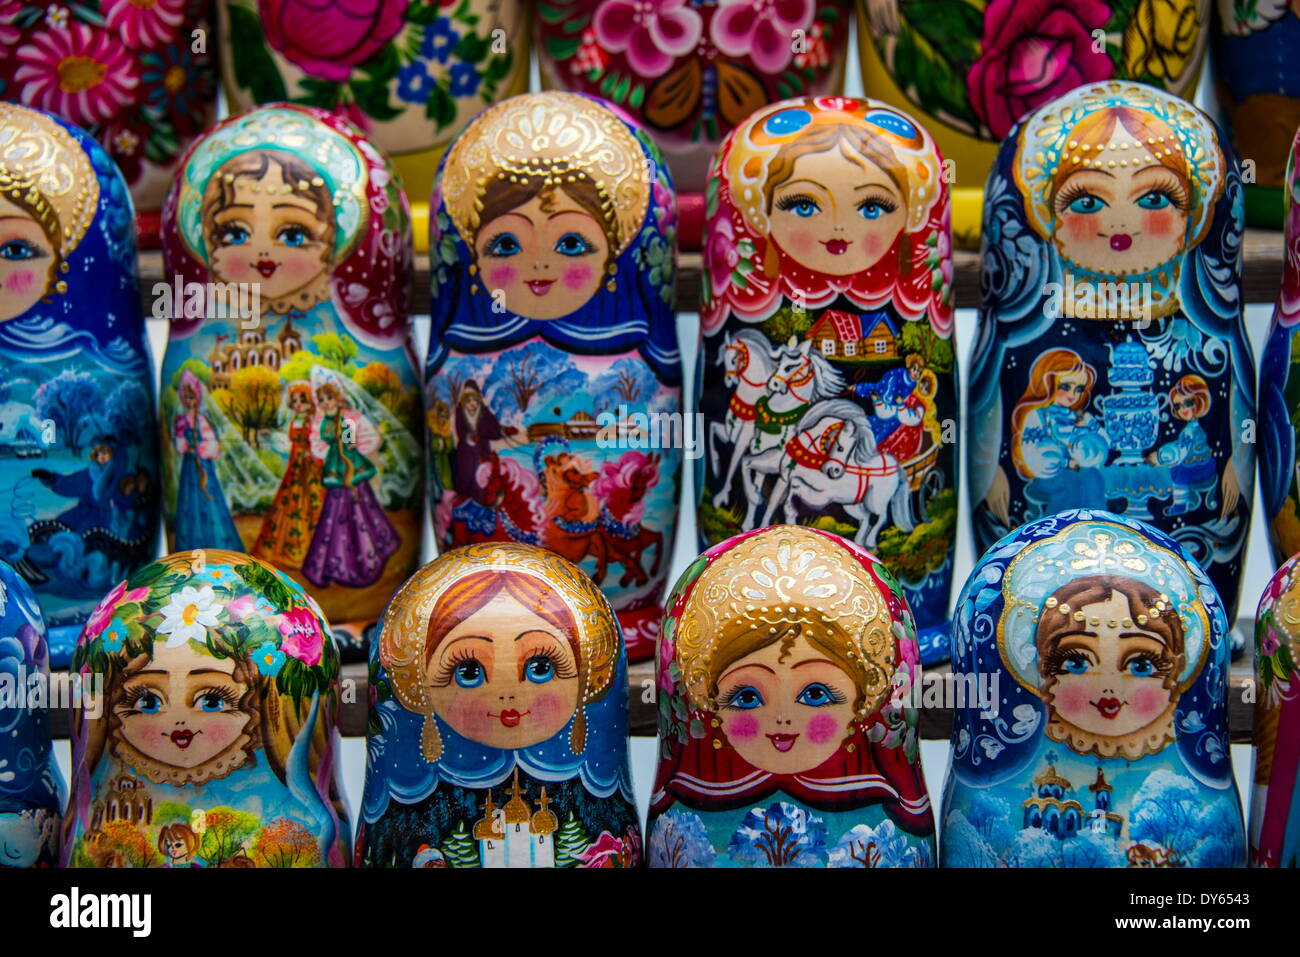 Russian dolls for sale as souvenirs in Kiev (Kyiv), Ukraine, Europe - Stock Image